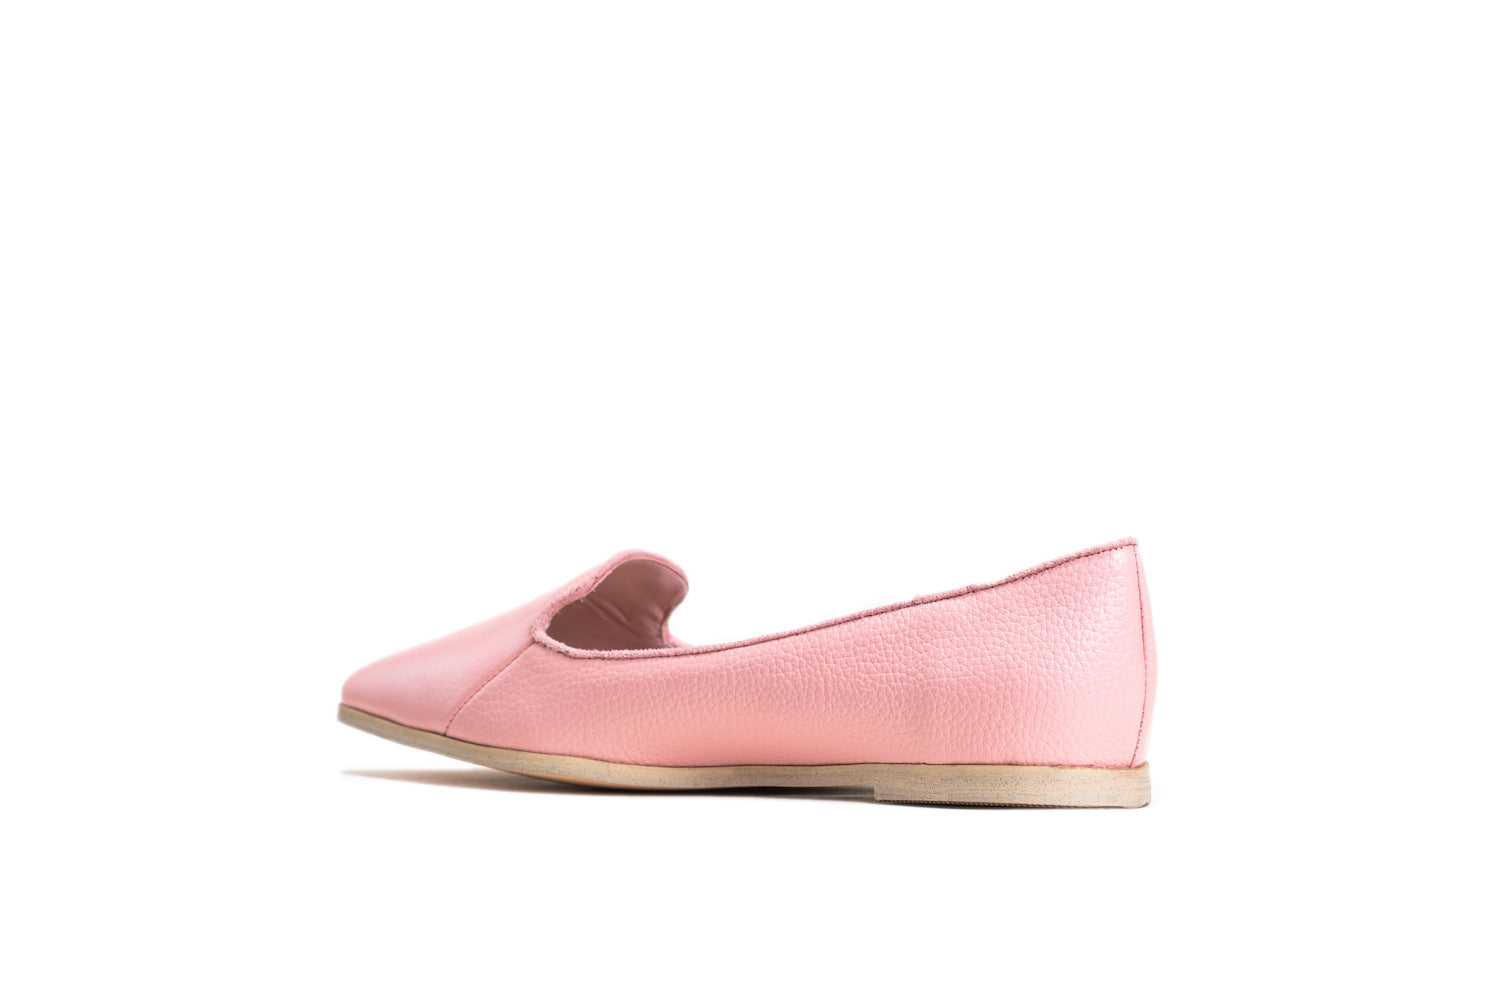 almond shaped toe millennial peach leather flats